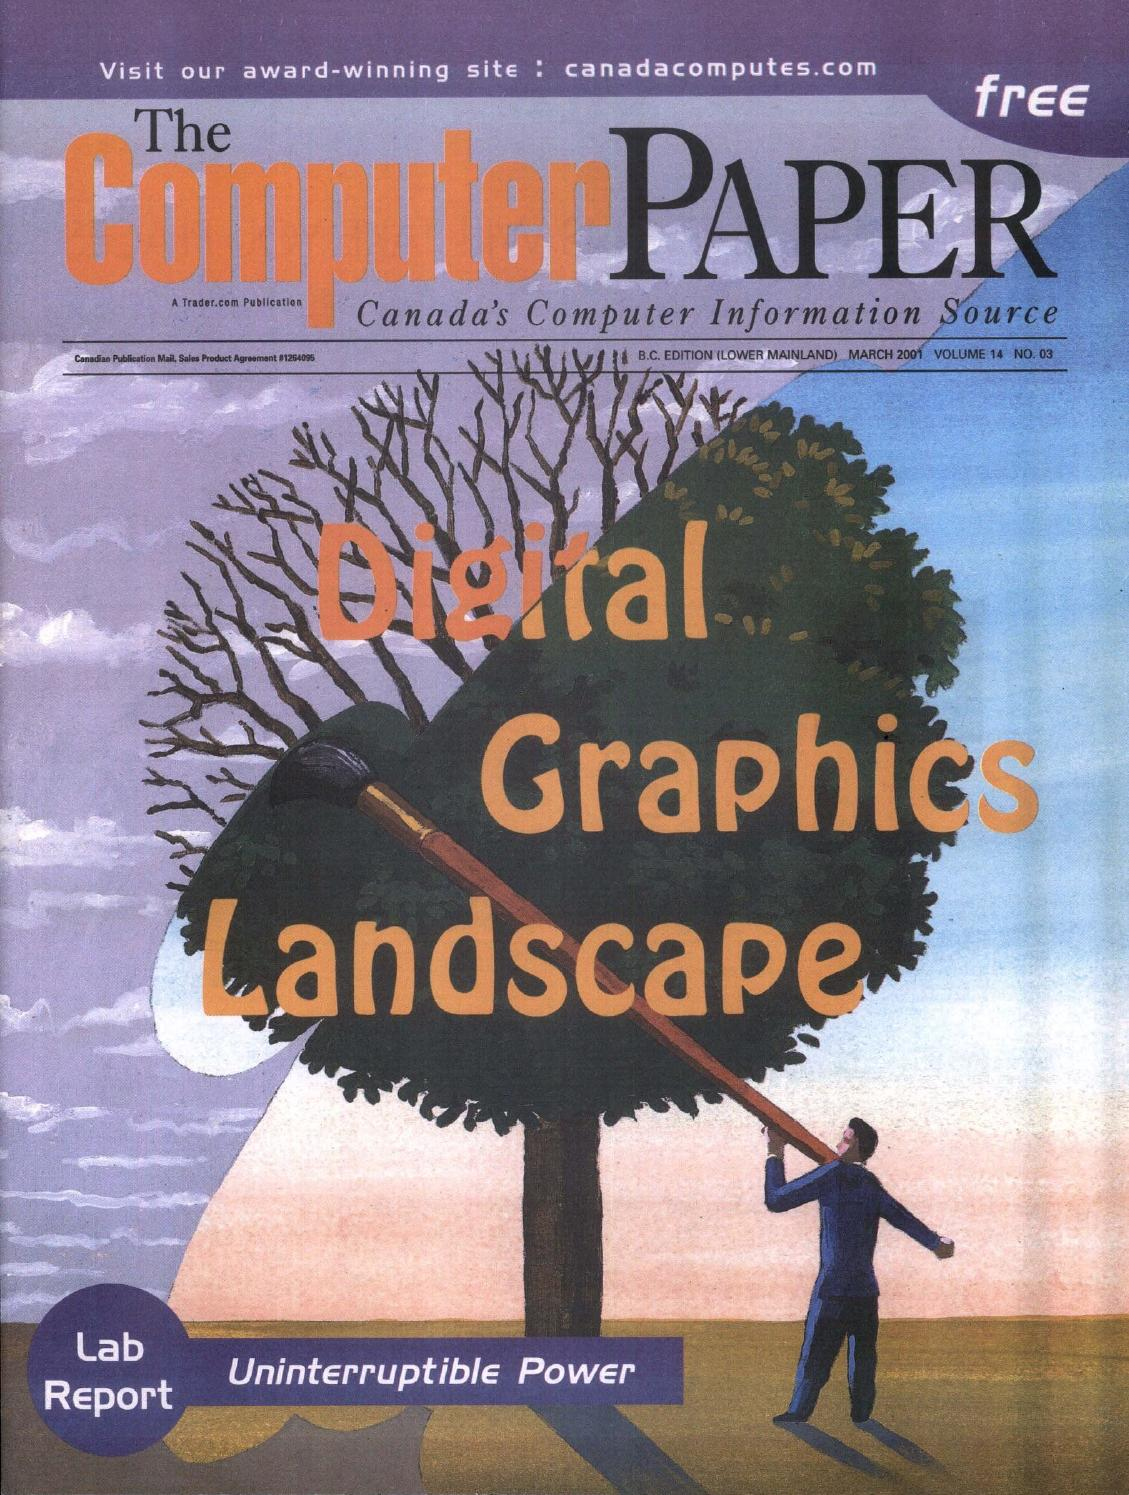 1999 03 the computer paper bc edition by the computer paper issuu - Hai Krperkissen Das Dich Isst